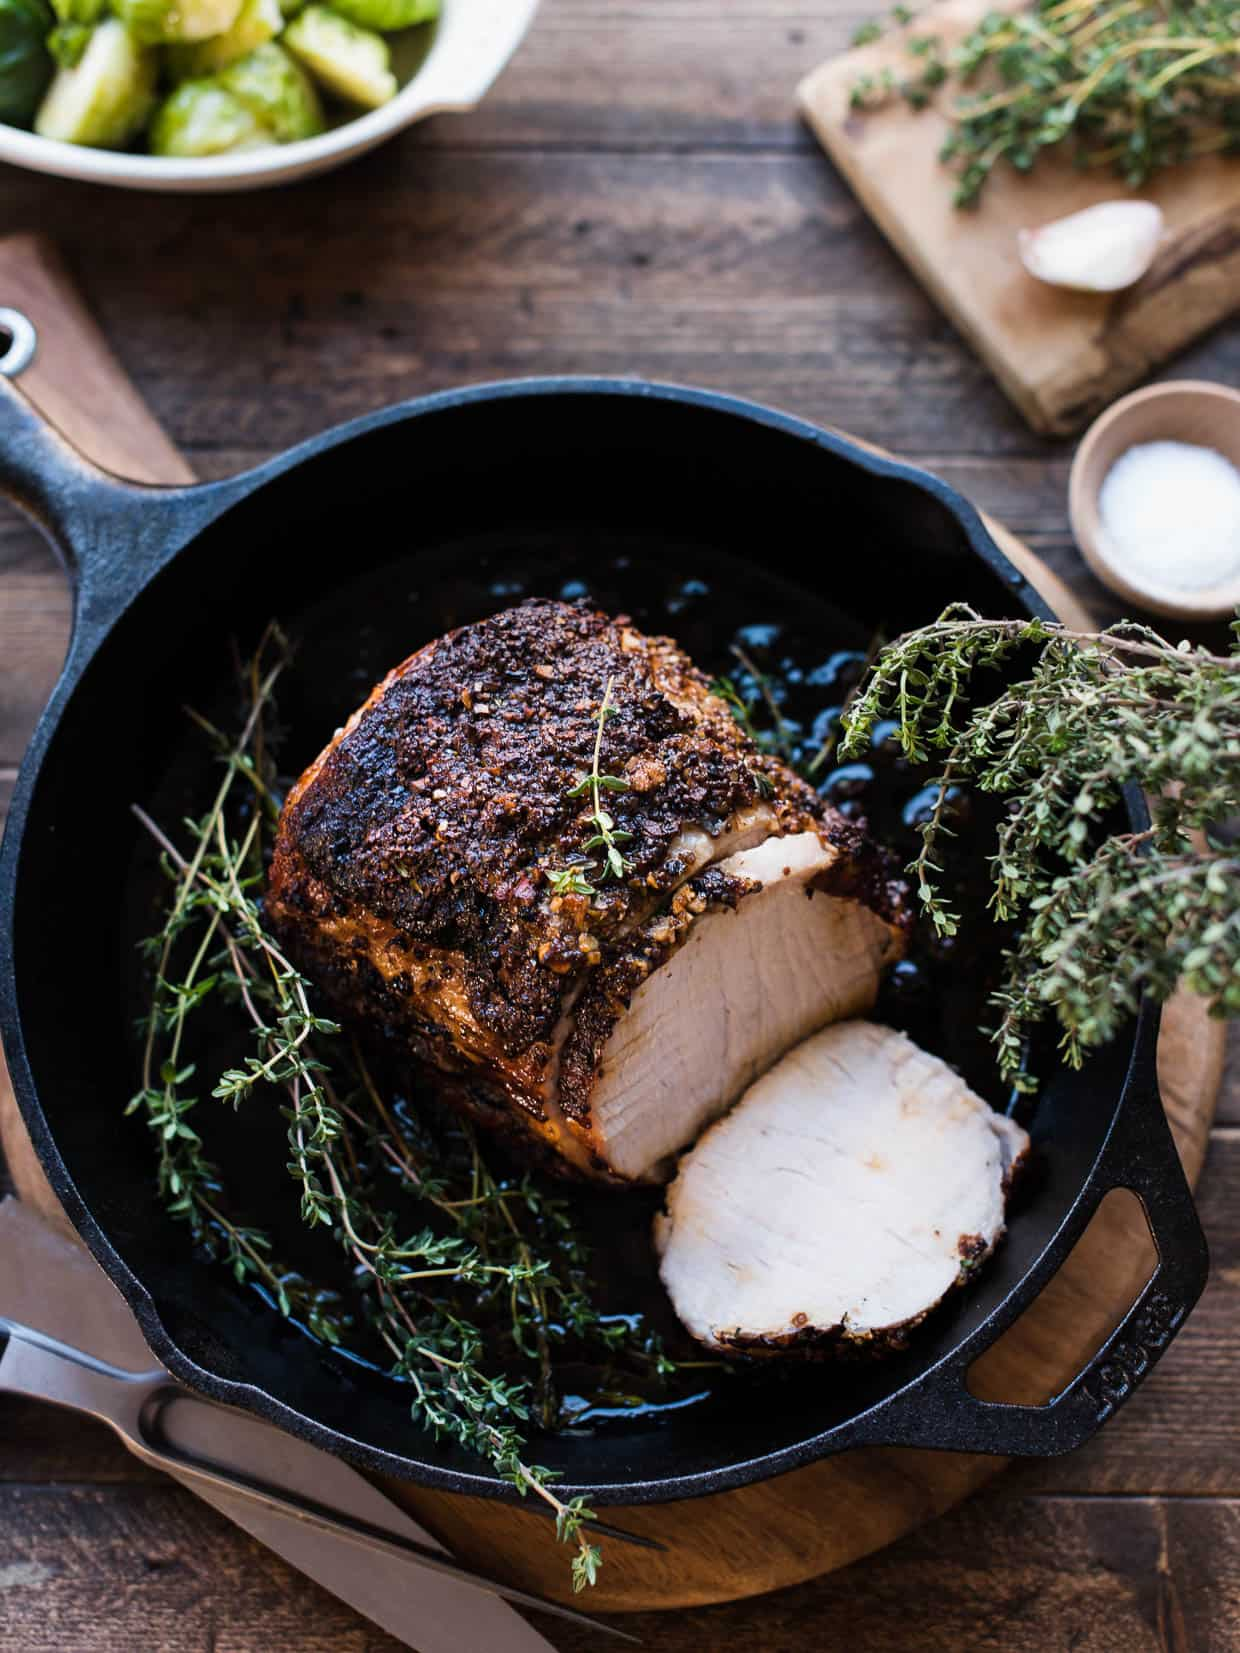 Roast pork loin with balsamic, Dijon and thyme in cast iron skillet.